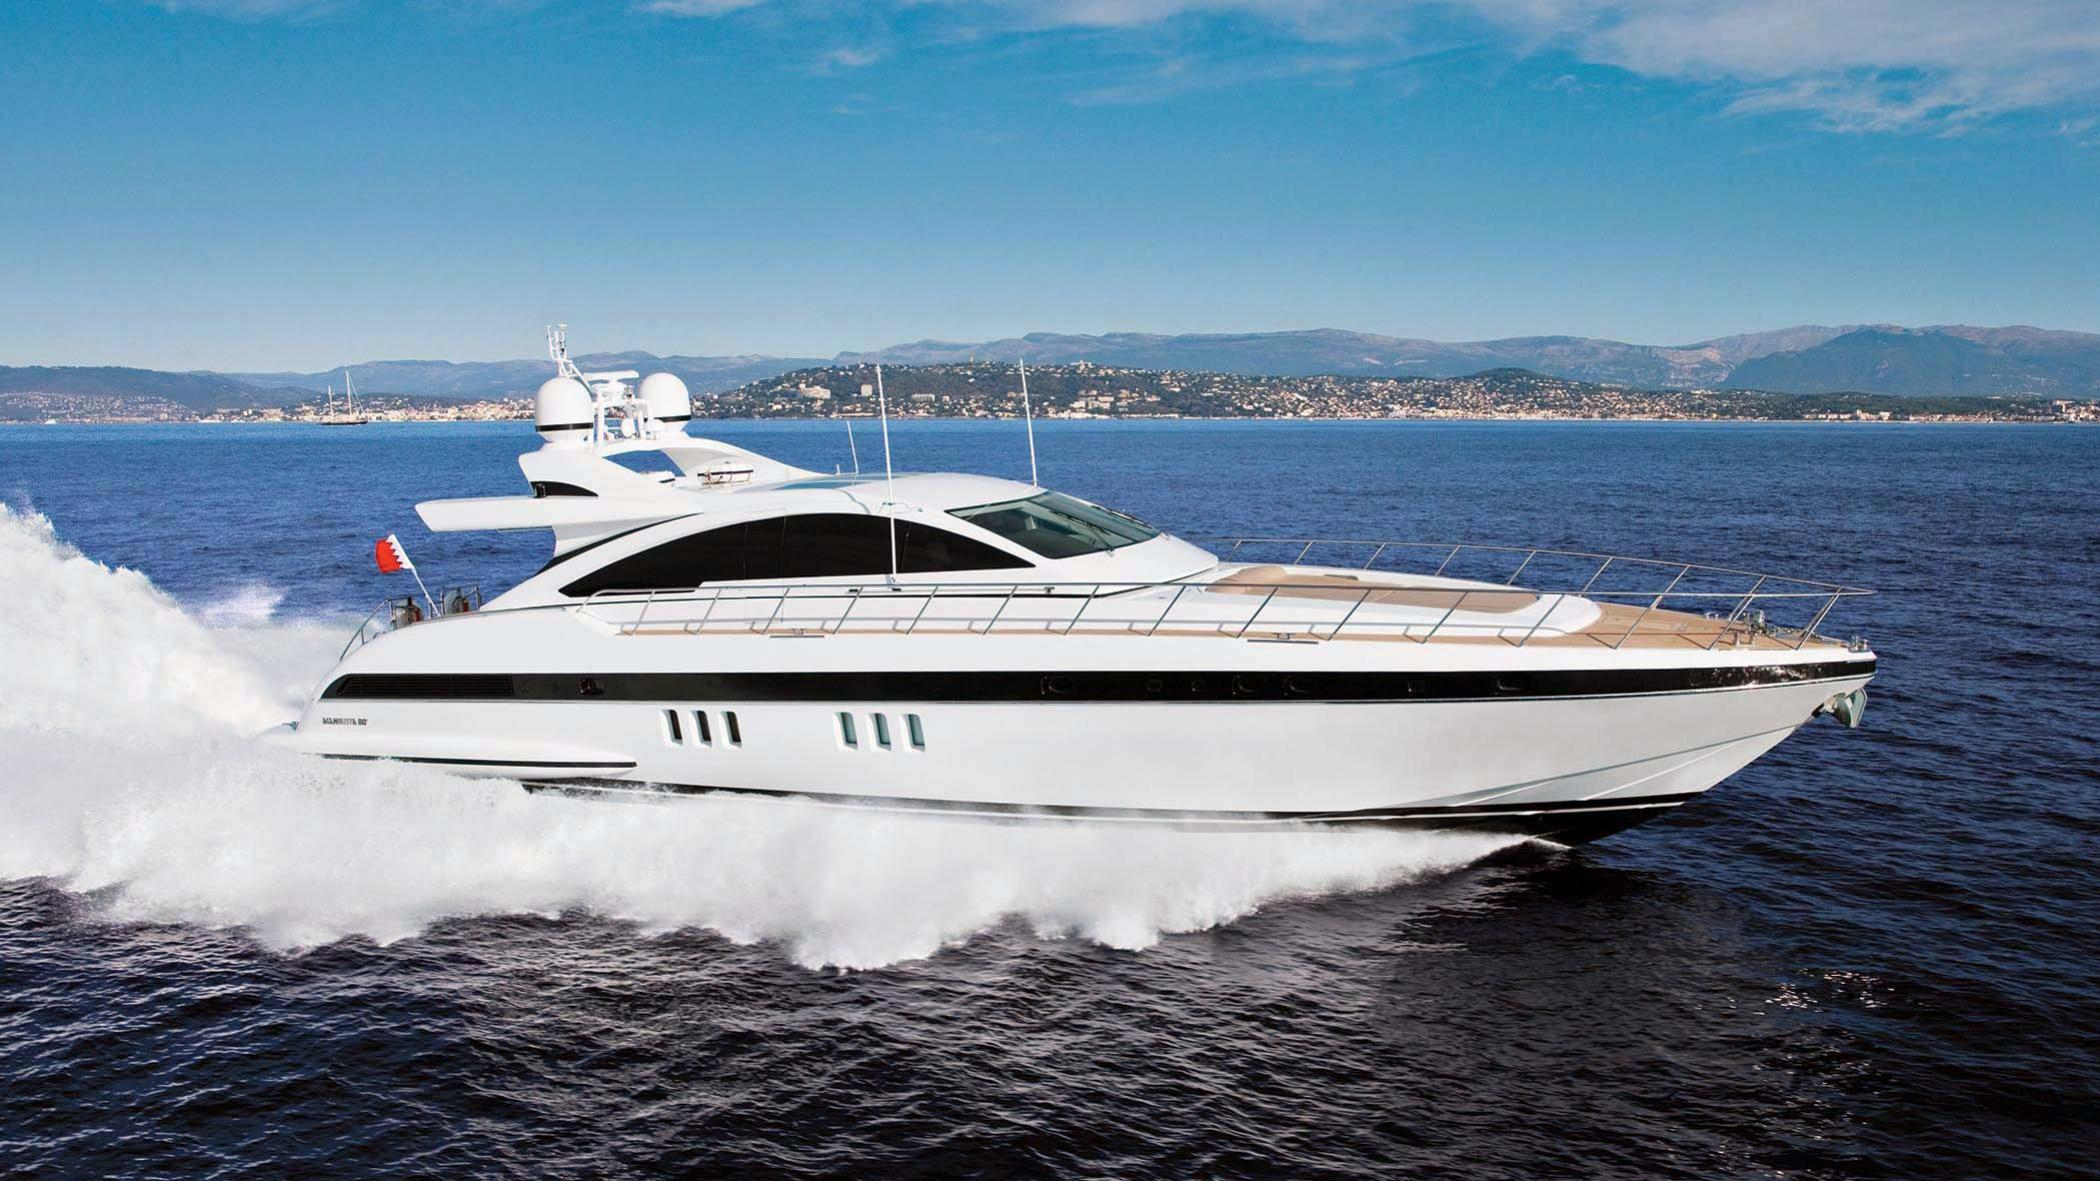 Milu II, Overmarine motor yacht for sale cruising